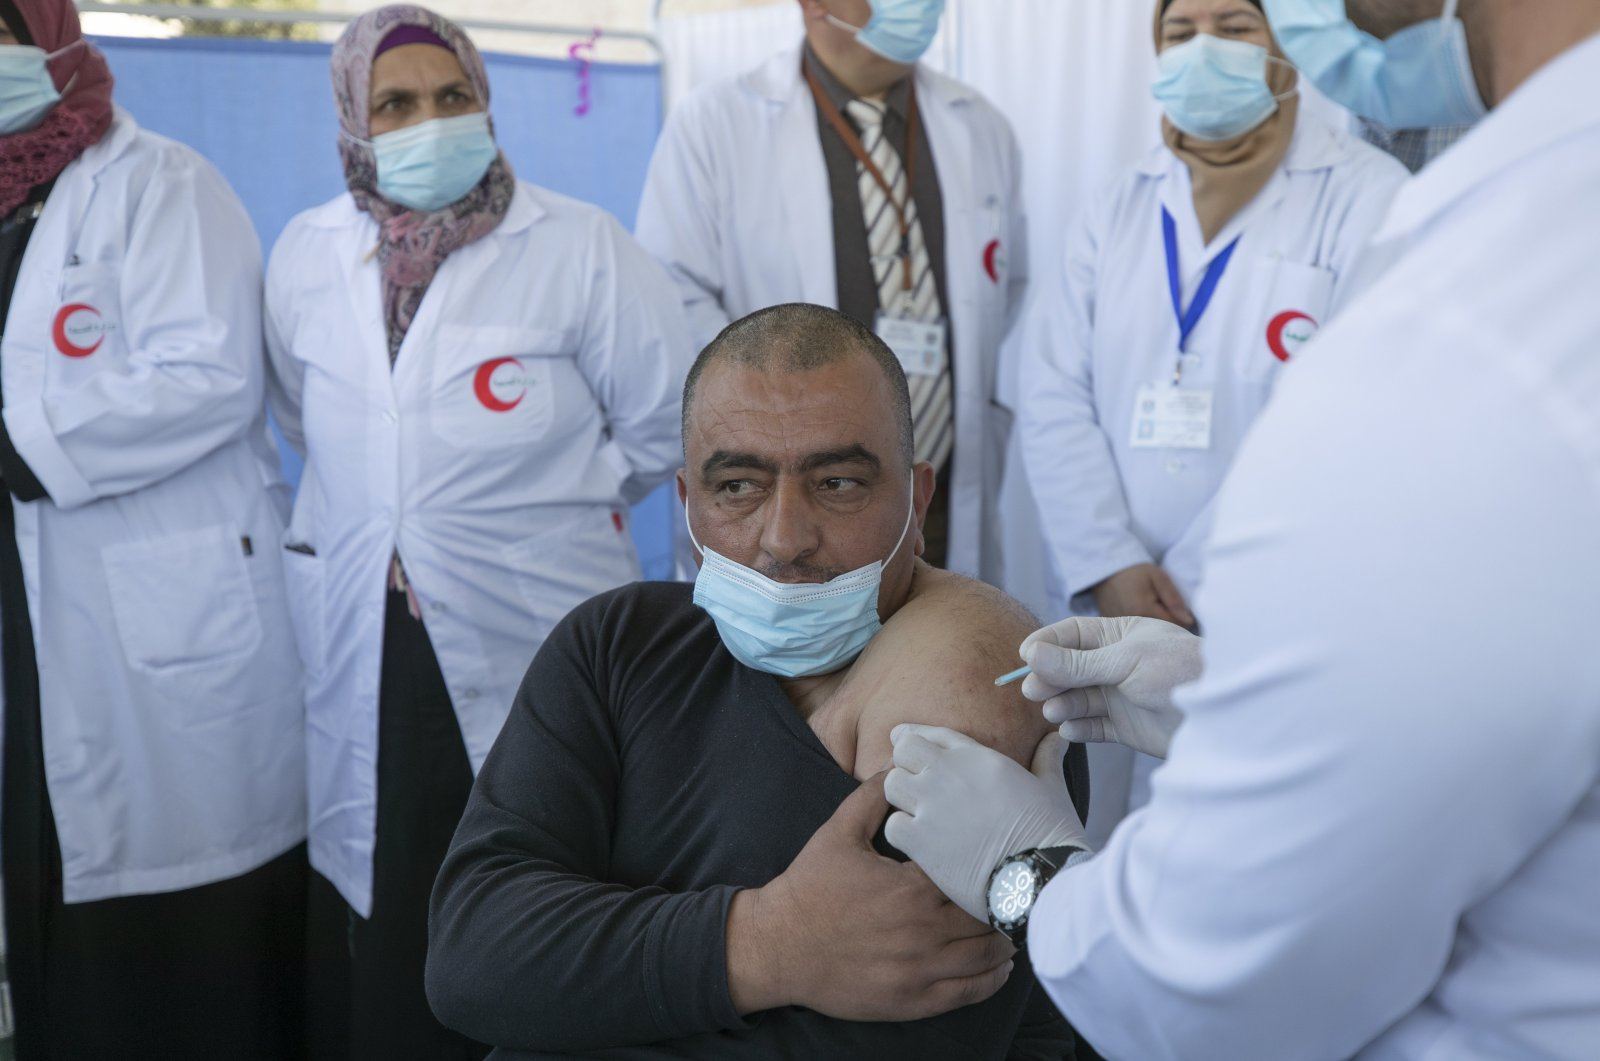 A medic administers a COVID-19 vaccine to a fellow medic during a campaign to vaccinate front-line medical workers at the health ministry in Bethlehem, occupied West Bank, Palestine, Feb. 3, 2021. (AP Photo)